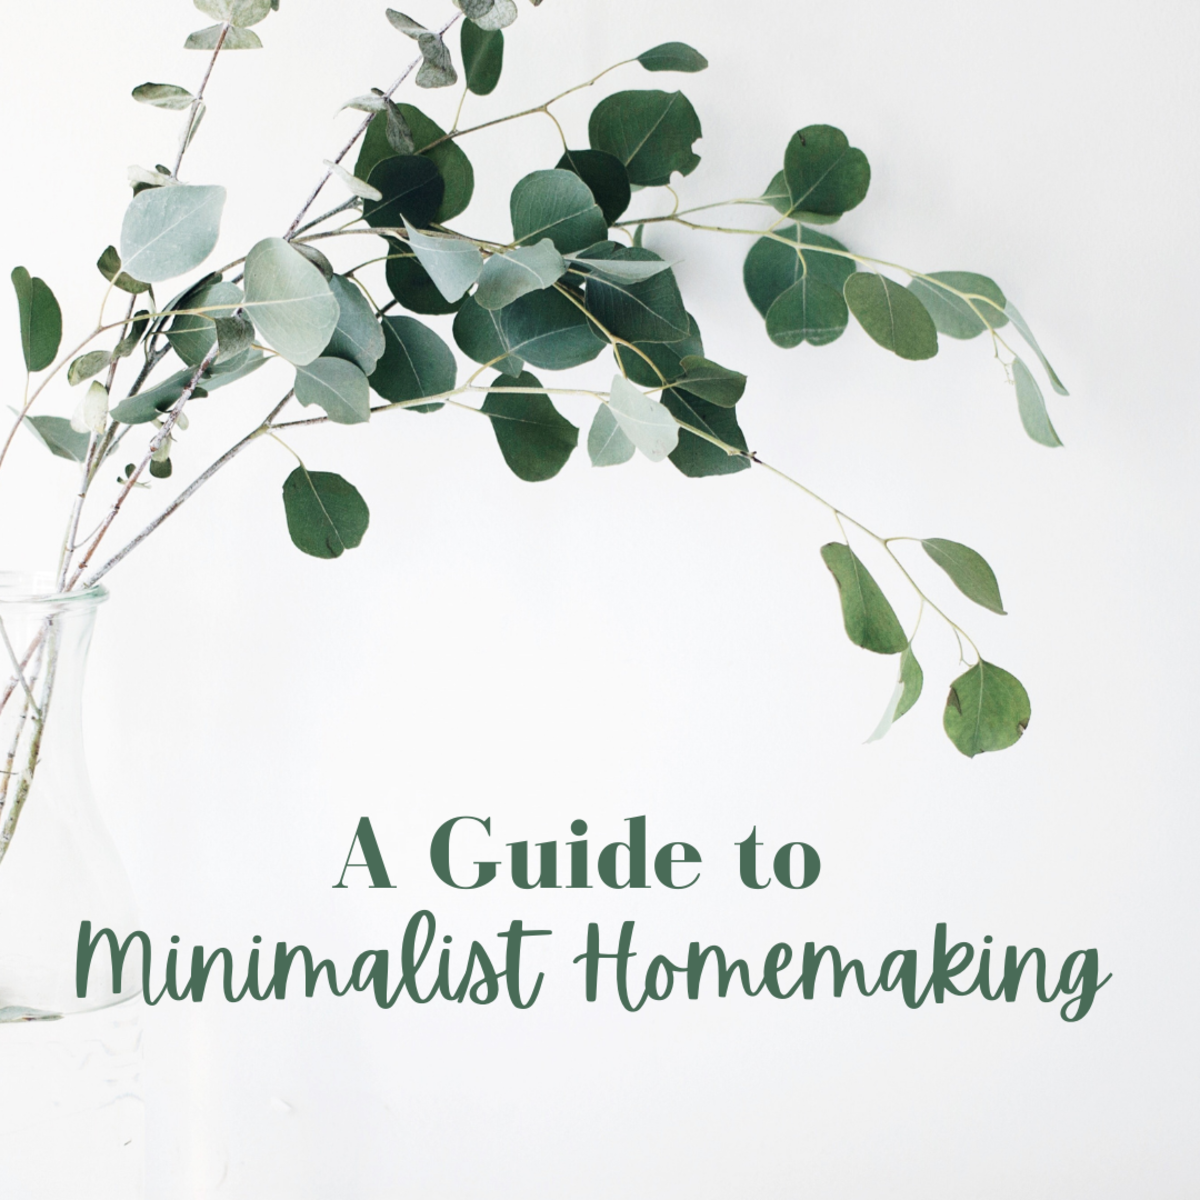 Simplify your cleaning routine, decor, and style utilizing the fundamentals of minimalist homemaking.